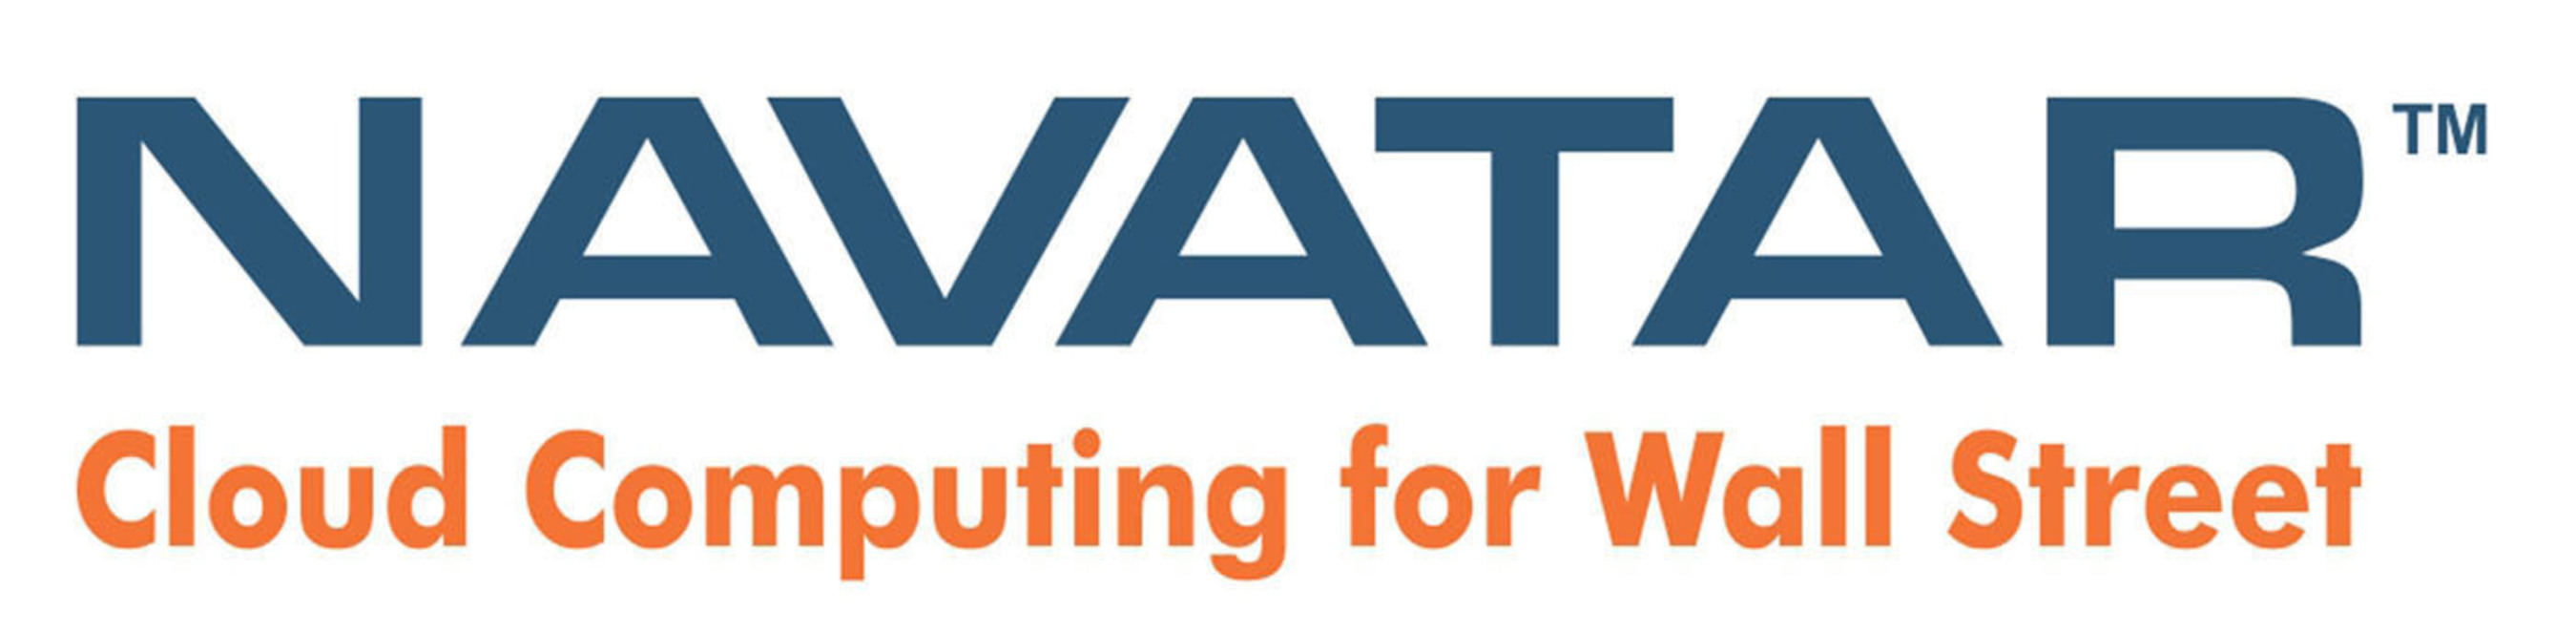 Navatar - Cloud Computing for Financial Services. Salesforce for Financial Services. Financial Services CRM.